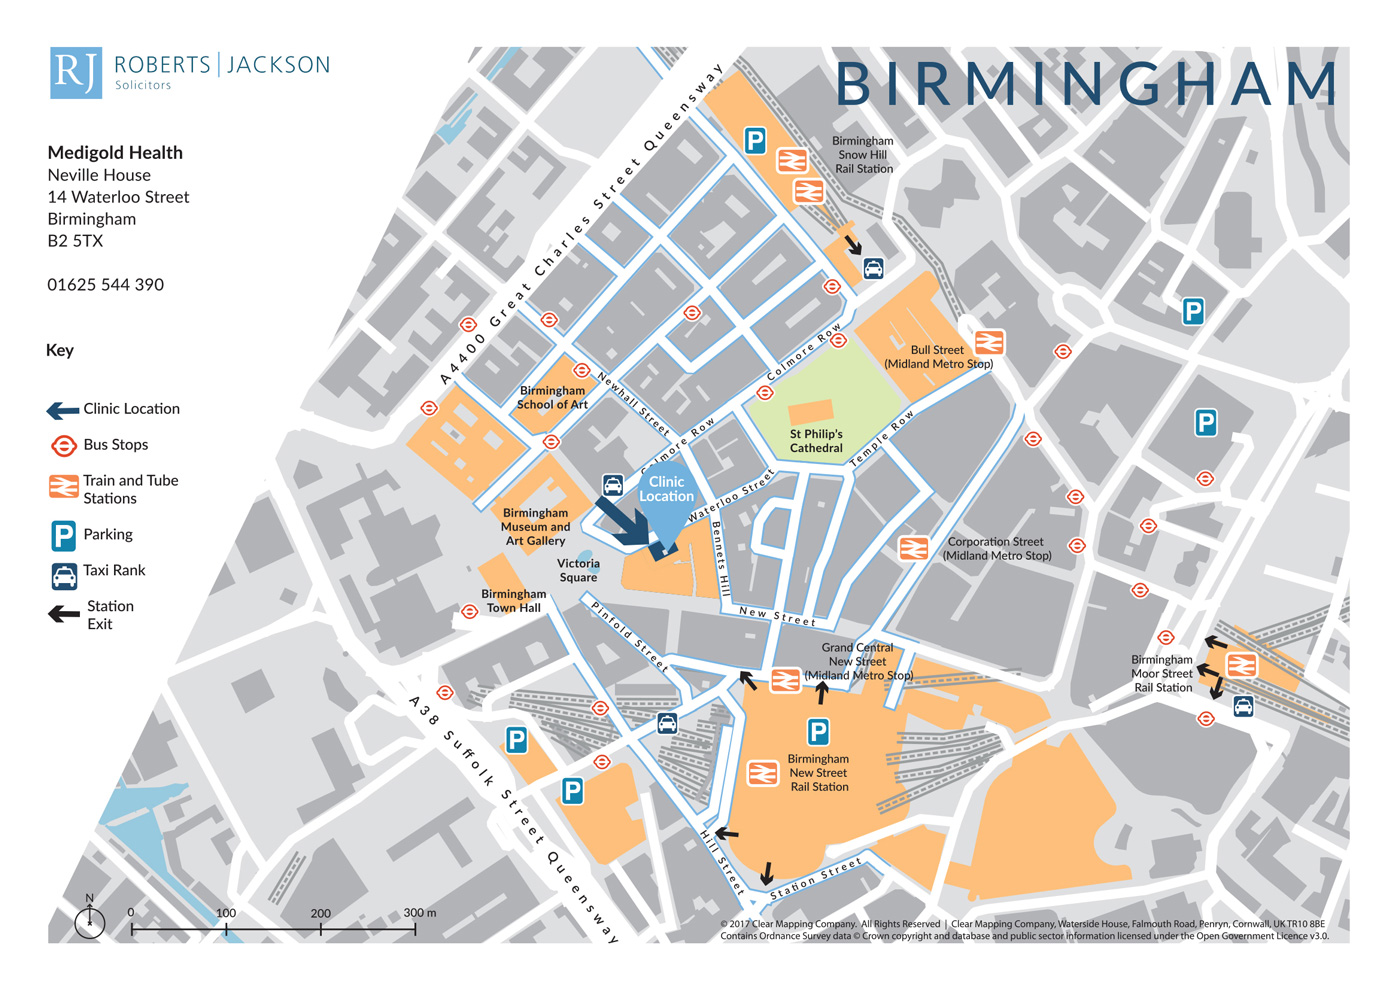 Map showing the location and transport links to a private health clinic in Birmingham